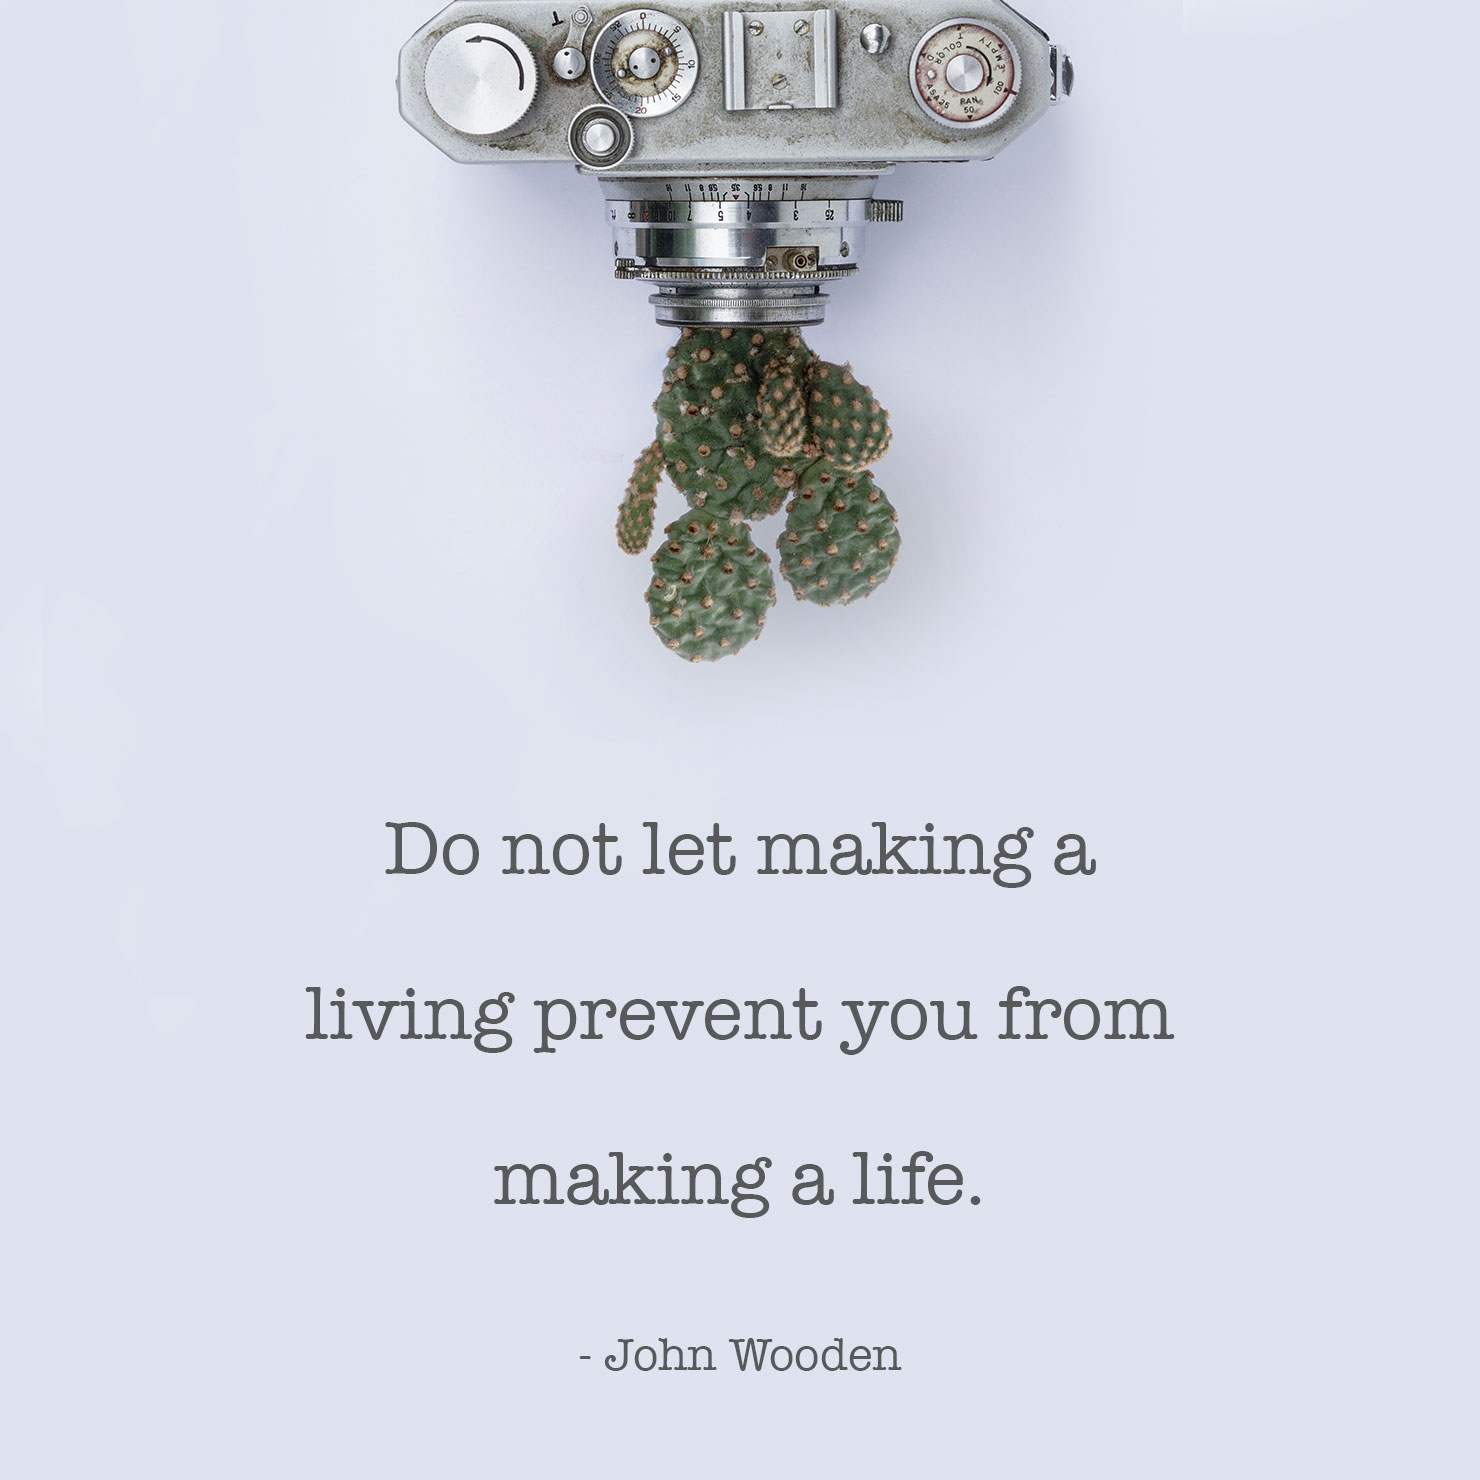 about life graduation quote: do not let making a living prevent you from making a life - John Wooden